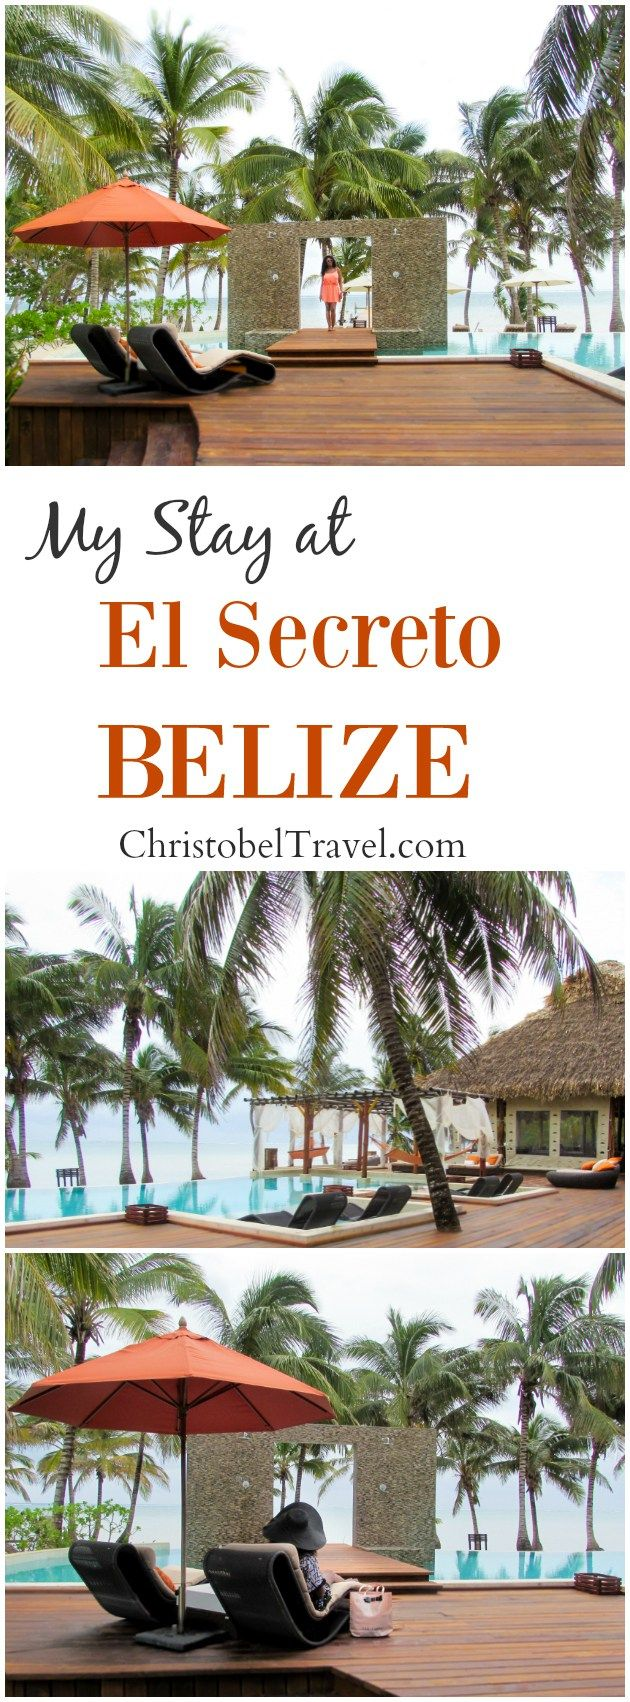 El Secreto Belize in San Pedro, Ambergris Caye. Here is my review on one of the best hotels in Belize. The views from the resort are stunning; perfect for a romantic getaway, quite relaxing holiday, a destination wedding and honeymoon in Belize - by Christobel Travel / Black girls / women travel / Travel with Style / Travel in Style